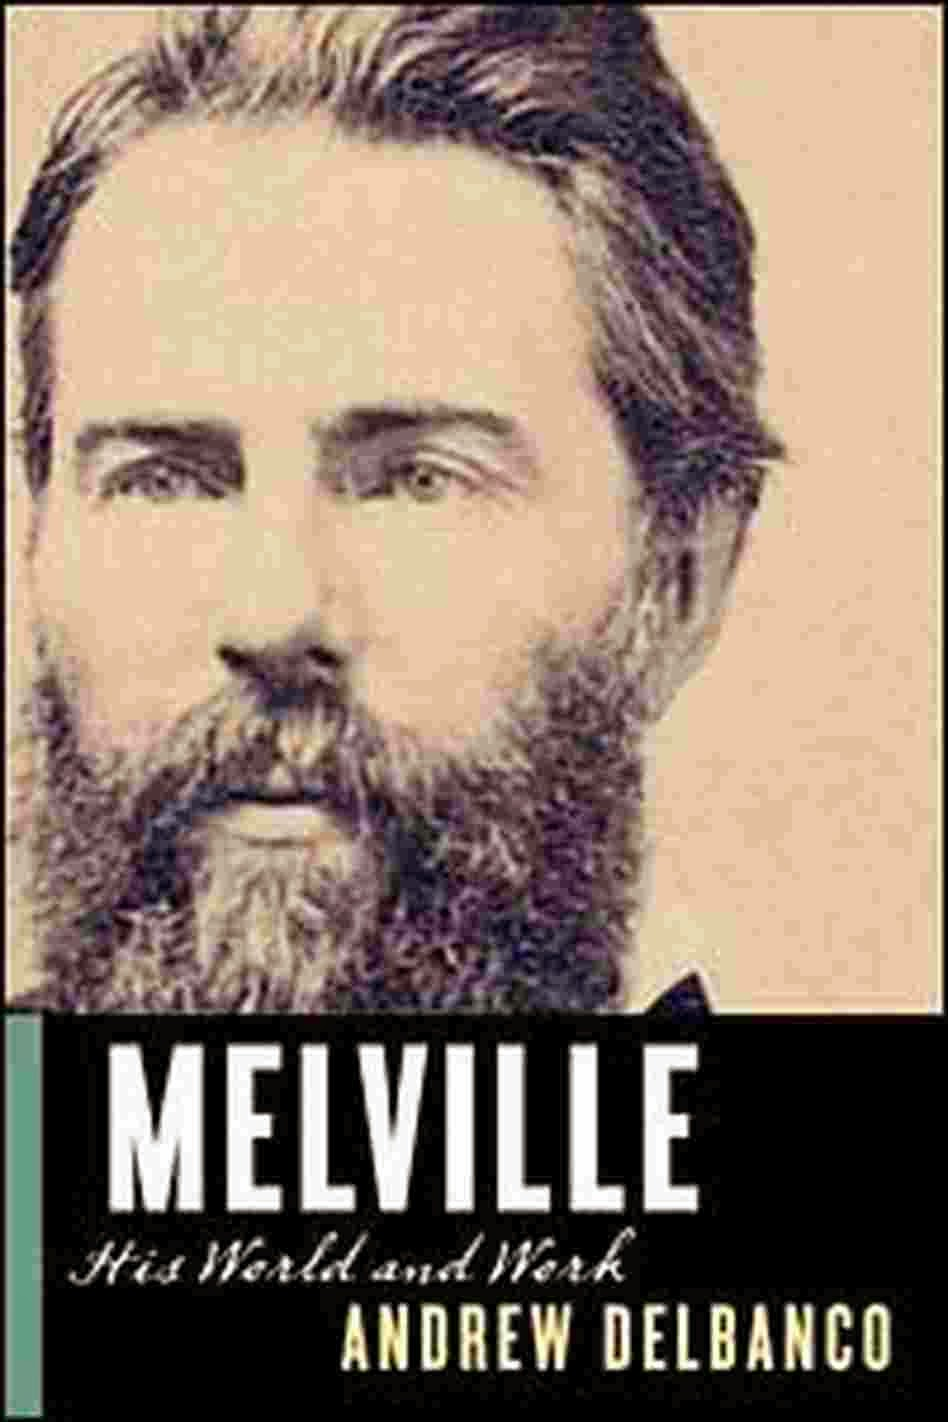 herman melville biography Melville biography: an inside narrative is hershel parker's history of the writing of melville biographies, enriched by his intimate working relationships with great melvilleans, dead and living the first part is a mesmerizing autobiographical account of what went into creating his award-winning two-volume life of herman melville.